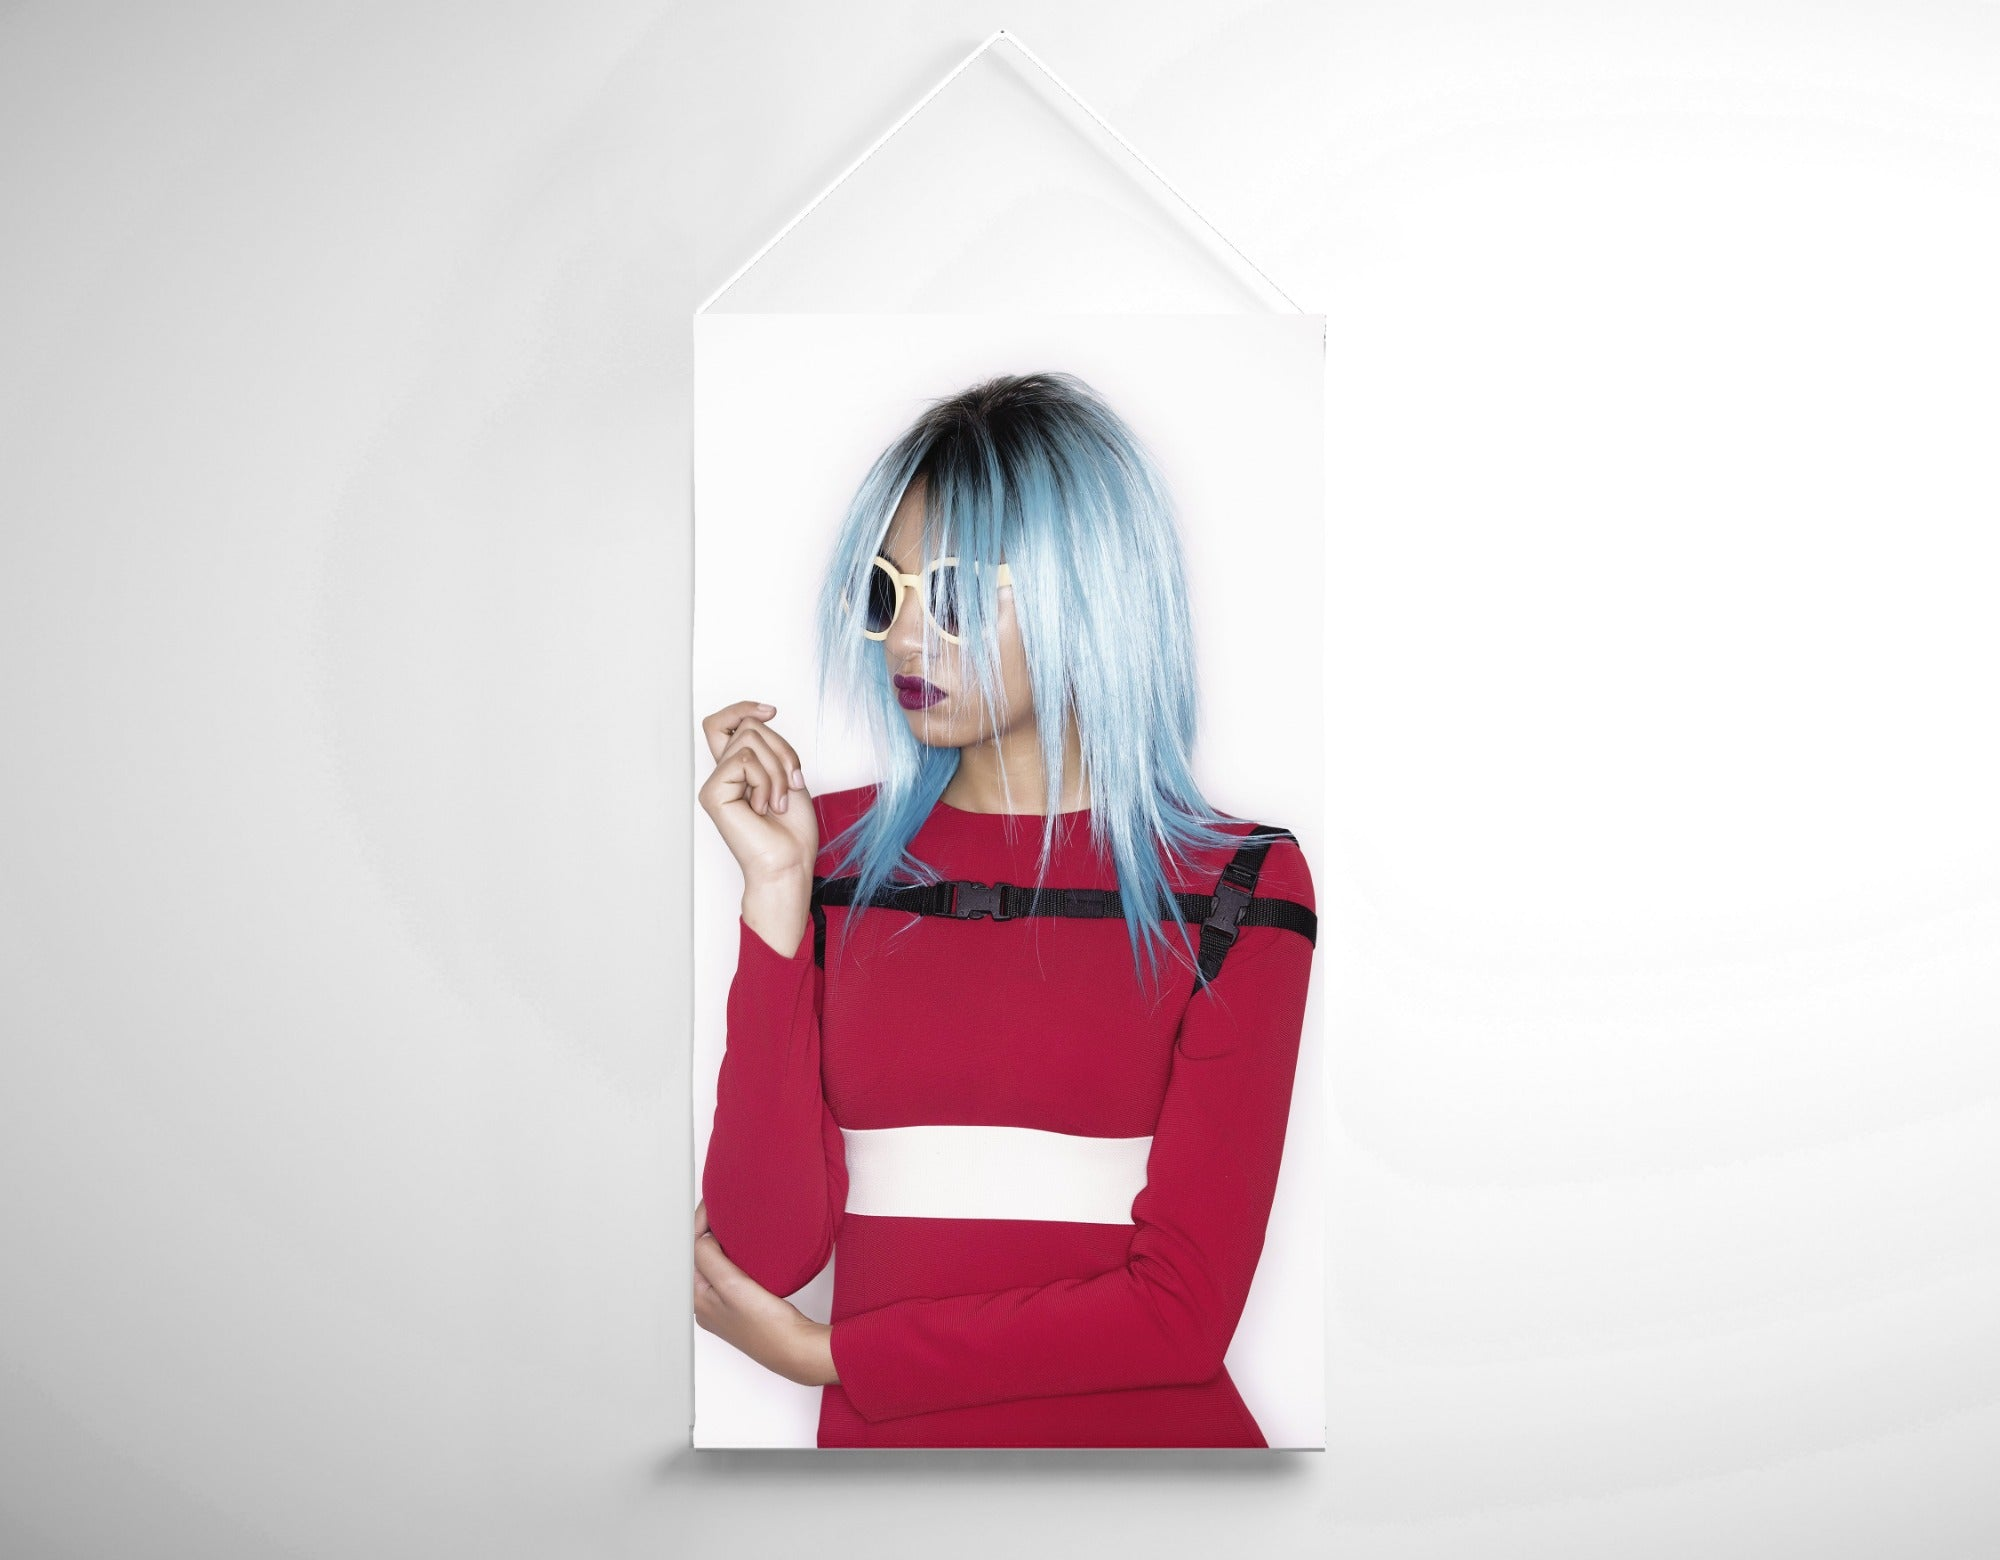 Textile Salon Banner - Woman with Blue Bob Hairstyle in Red Dress